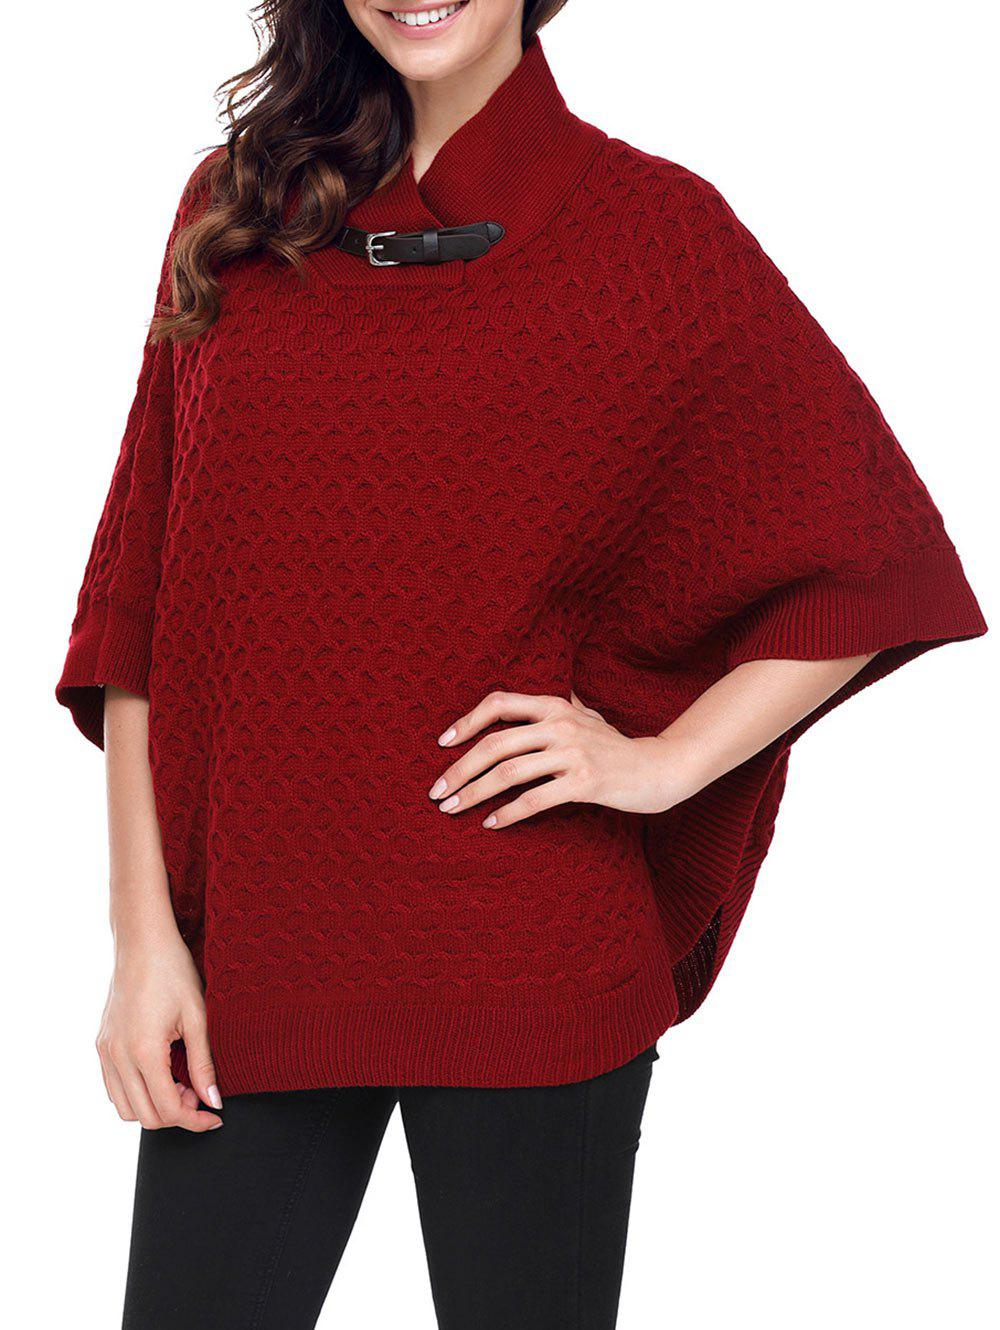 Hot Buckle Strap Knitted Cape Sweater